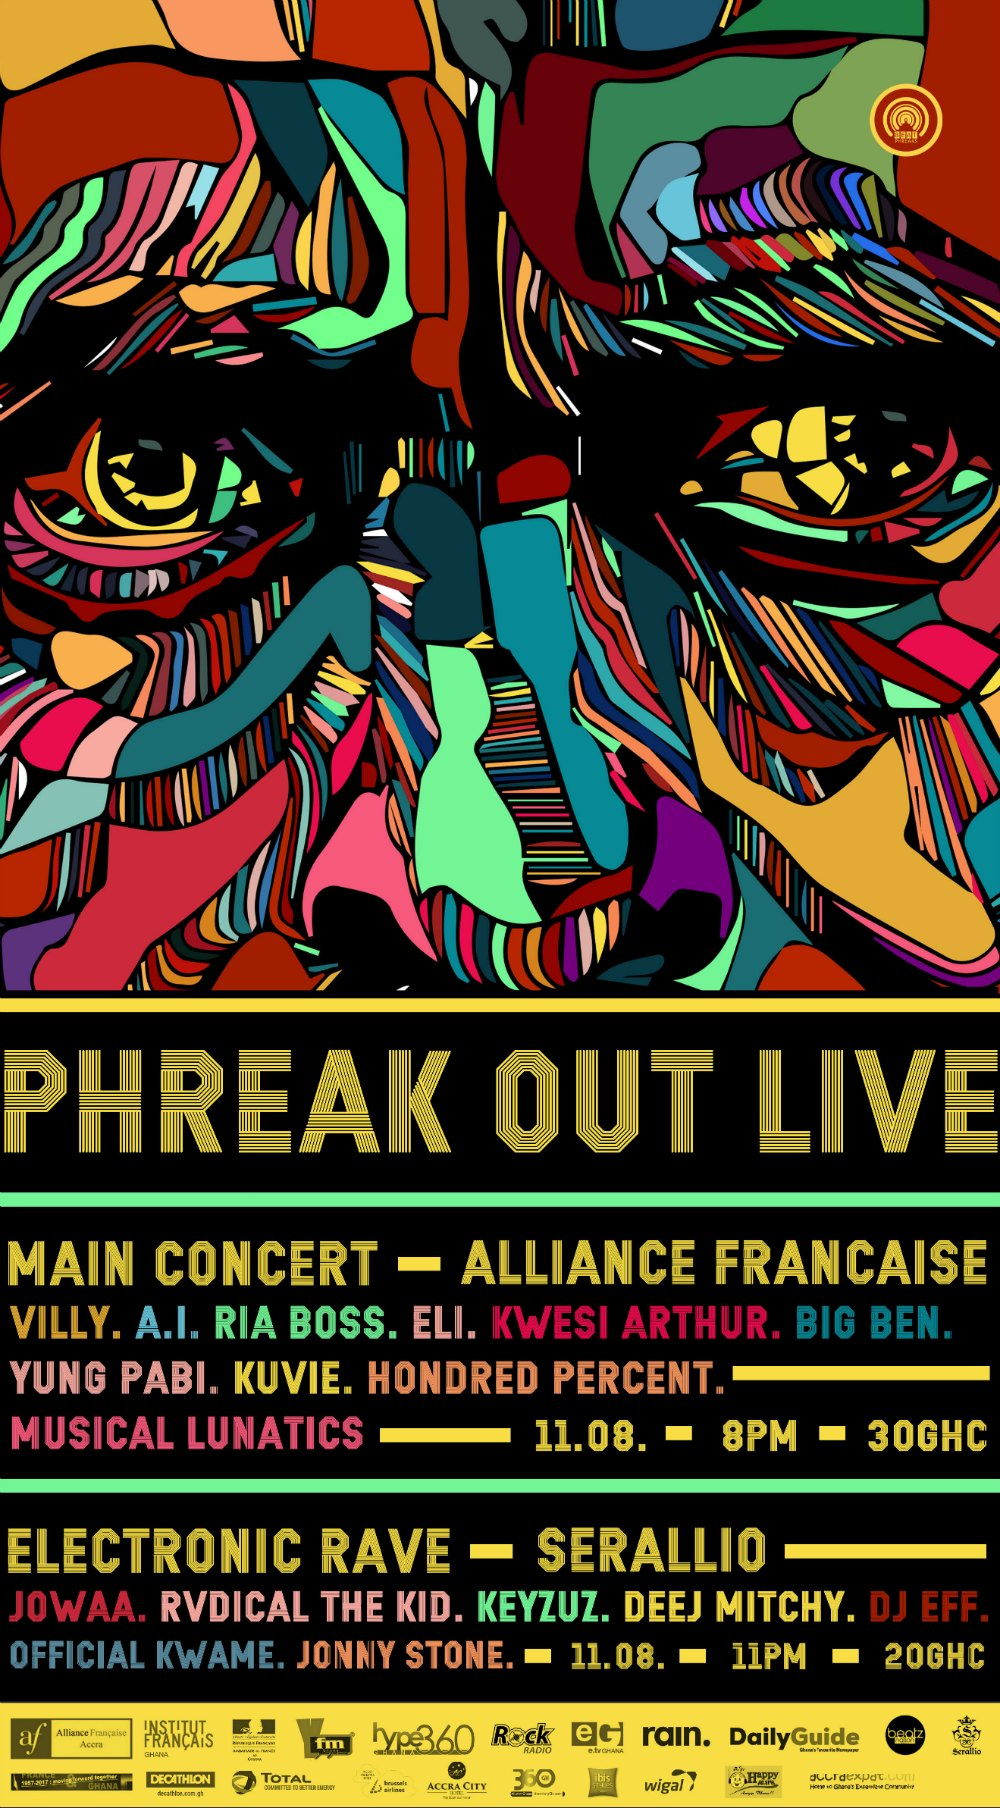 Phreak Out Live 2017 Slated For 11th August